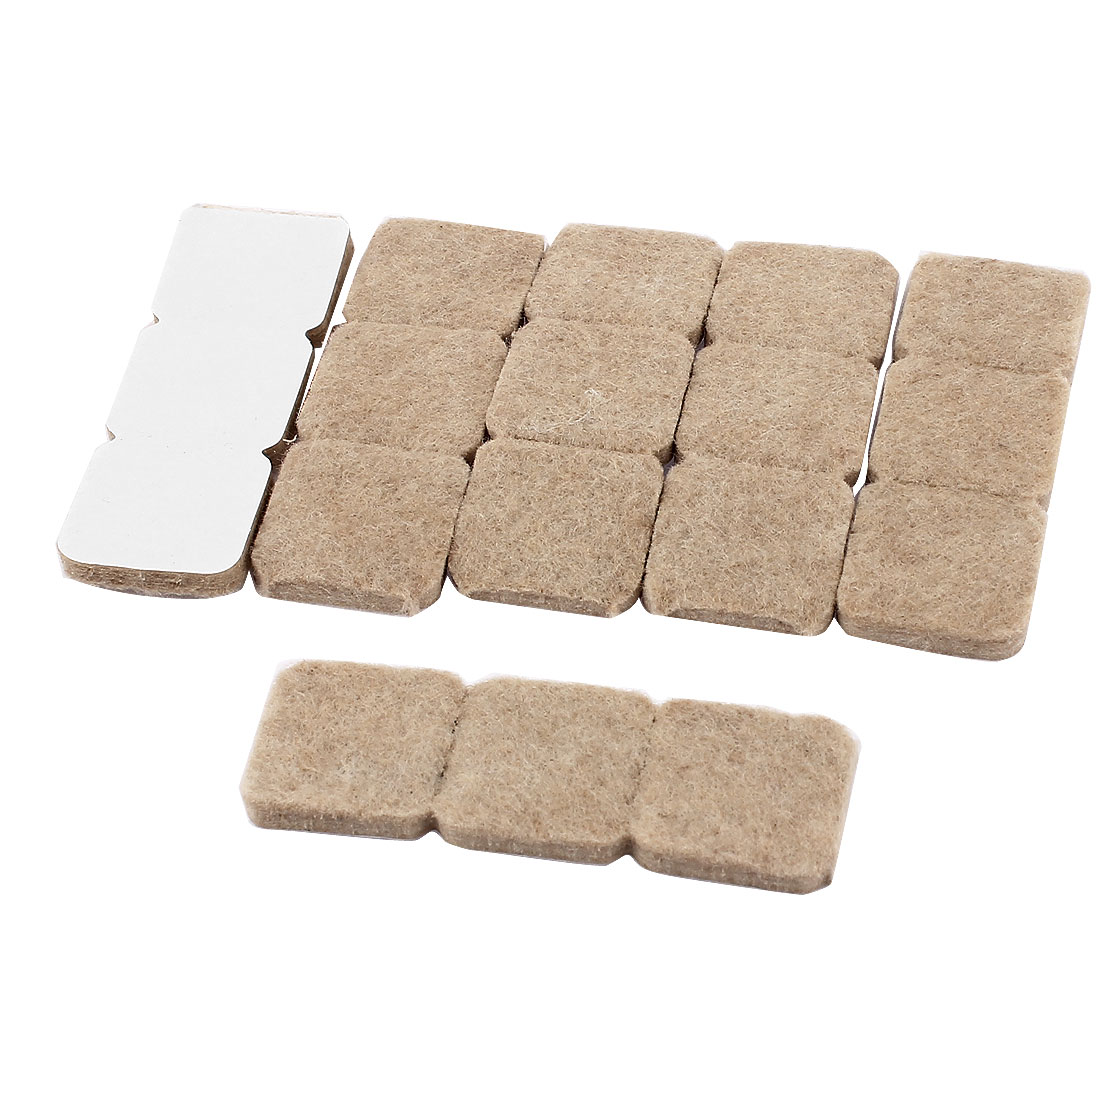 Furniture Chair Table Self Adhesive Scratch Felt Protector Pads Khaki 18pcs